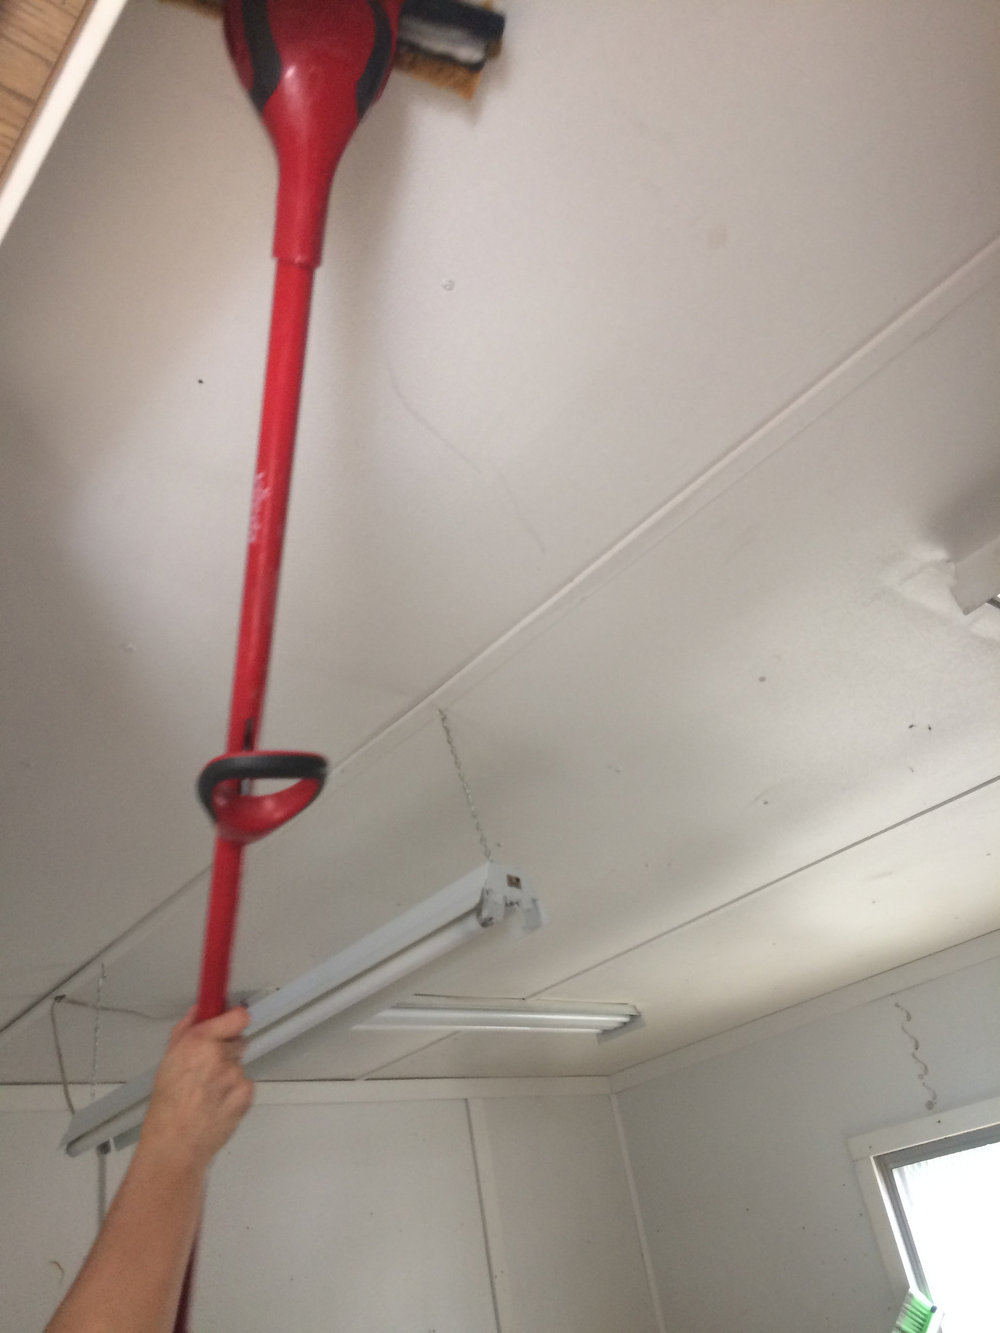 tool library clean ceiling 2.jpg